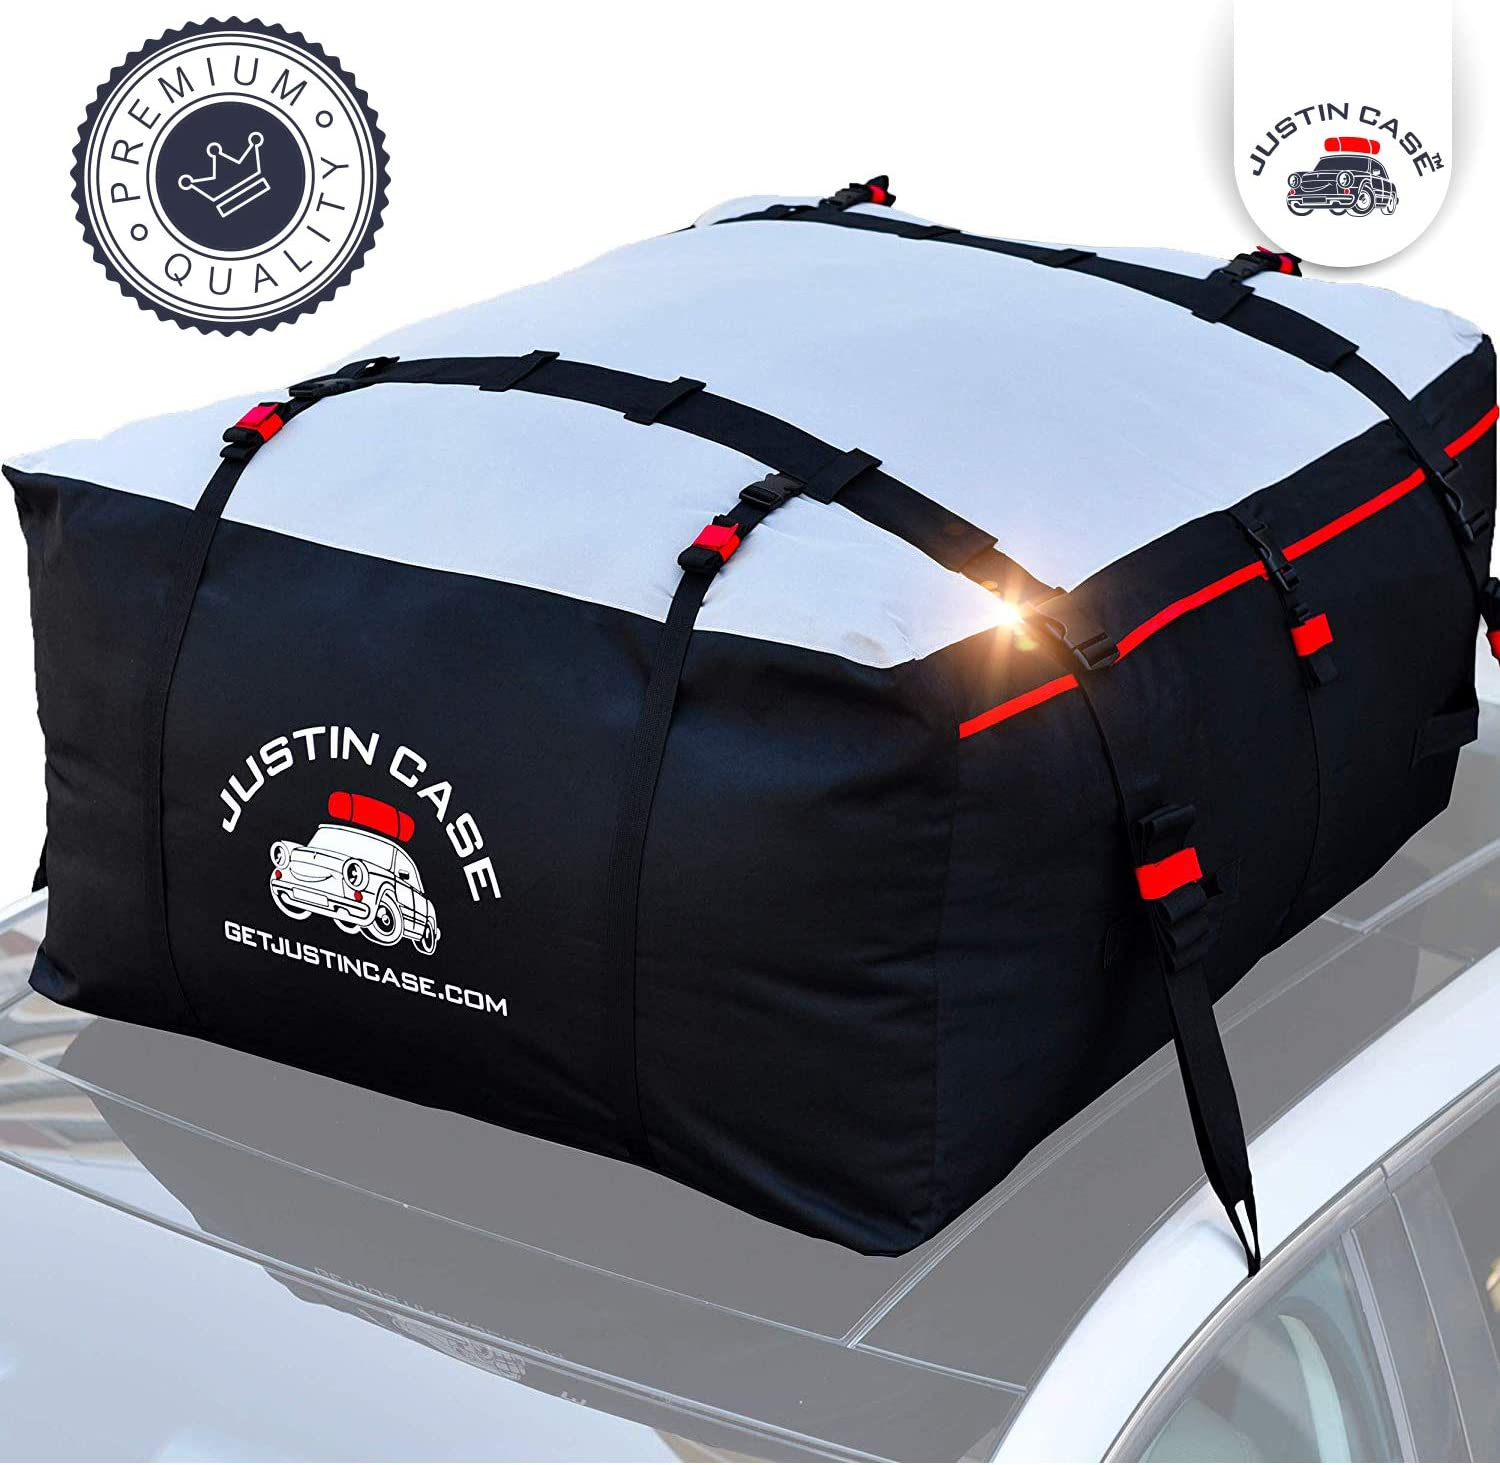 JUSTINCASE Rooftop Cargo Carrier - Car – Top Manufacturer direct delivery Ranking TOP1 B Roof